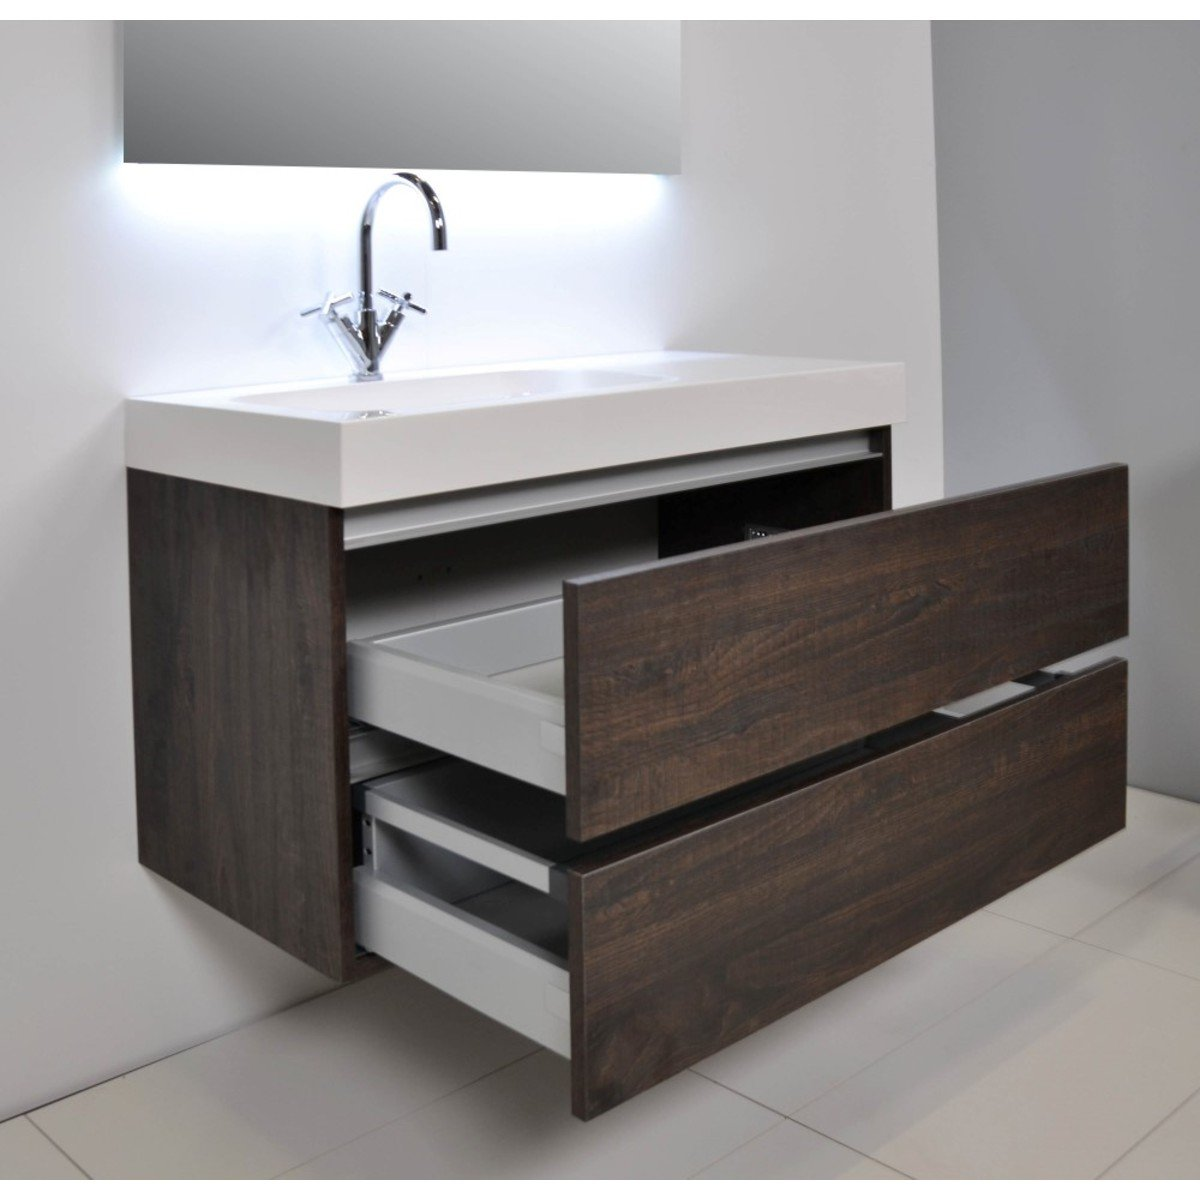 ink tablet set de meubles salle de bain 90cm avec armoire miroir sans poign e ch ne naturel. Black Bedroom Furniture Sets. Home Design Ideas